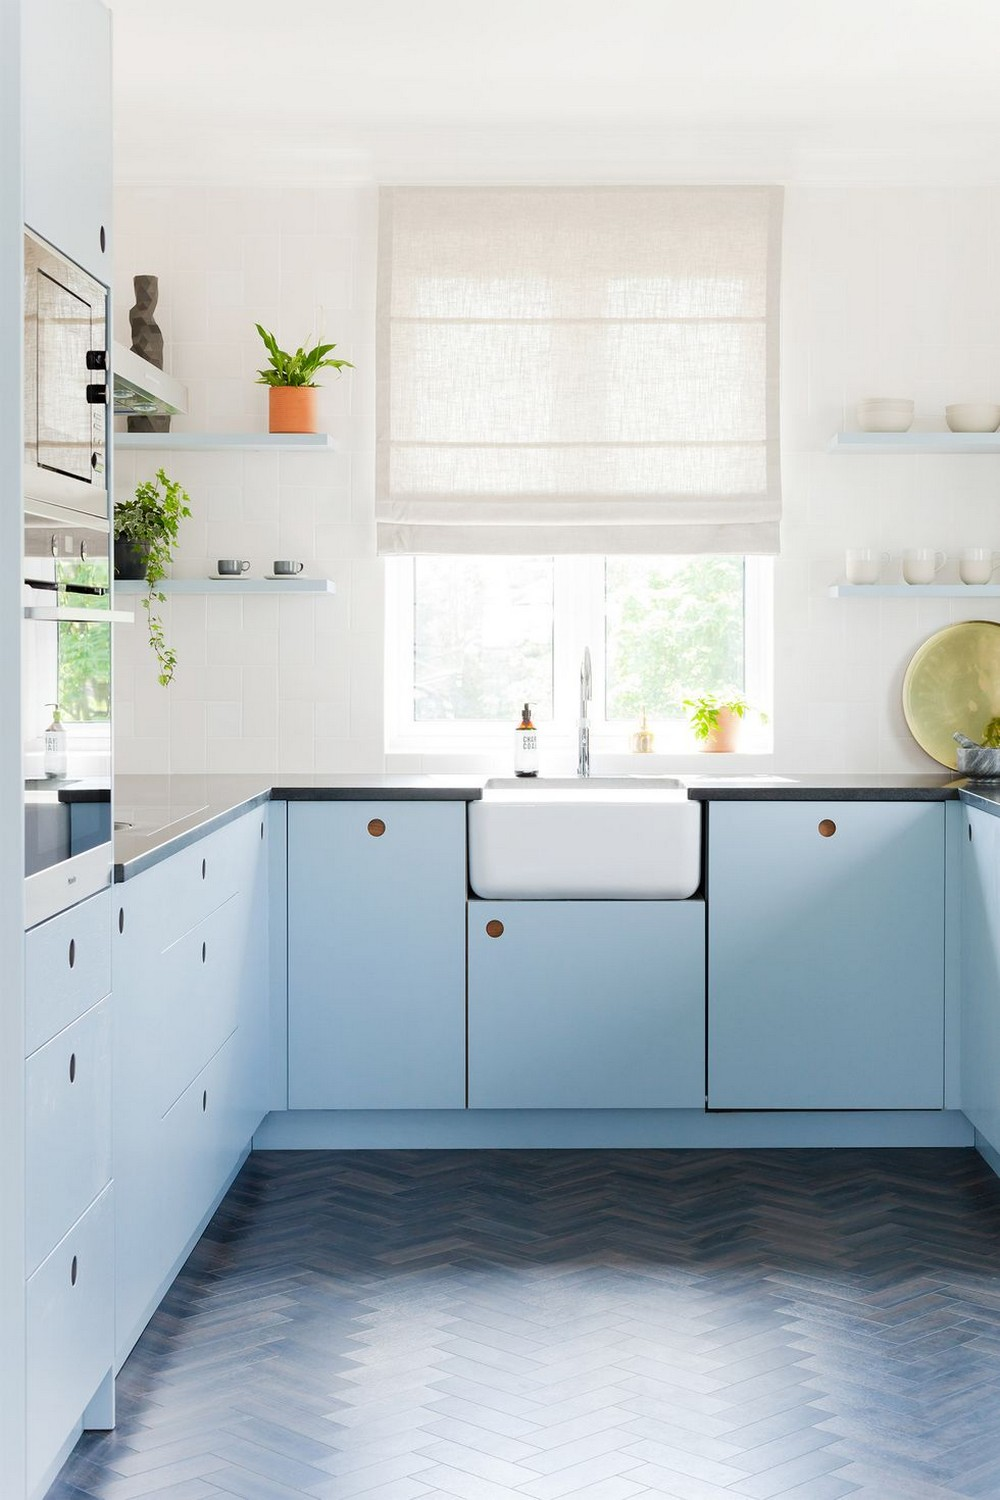 Fashion Your Luxury Kitchen with These Astounding Cabinet Paint Colors 1 luxury kitchen Fashion Your Luxury Kitchen with These Astounding Cabinet Paint Colors Fashion Your Luxury Kitchen with These Astounding Cabinet Paint Colors 1